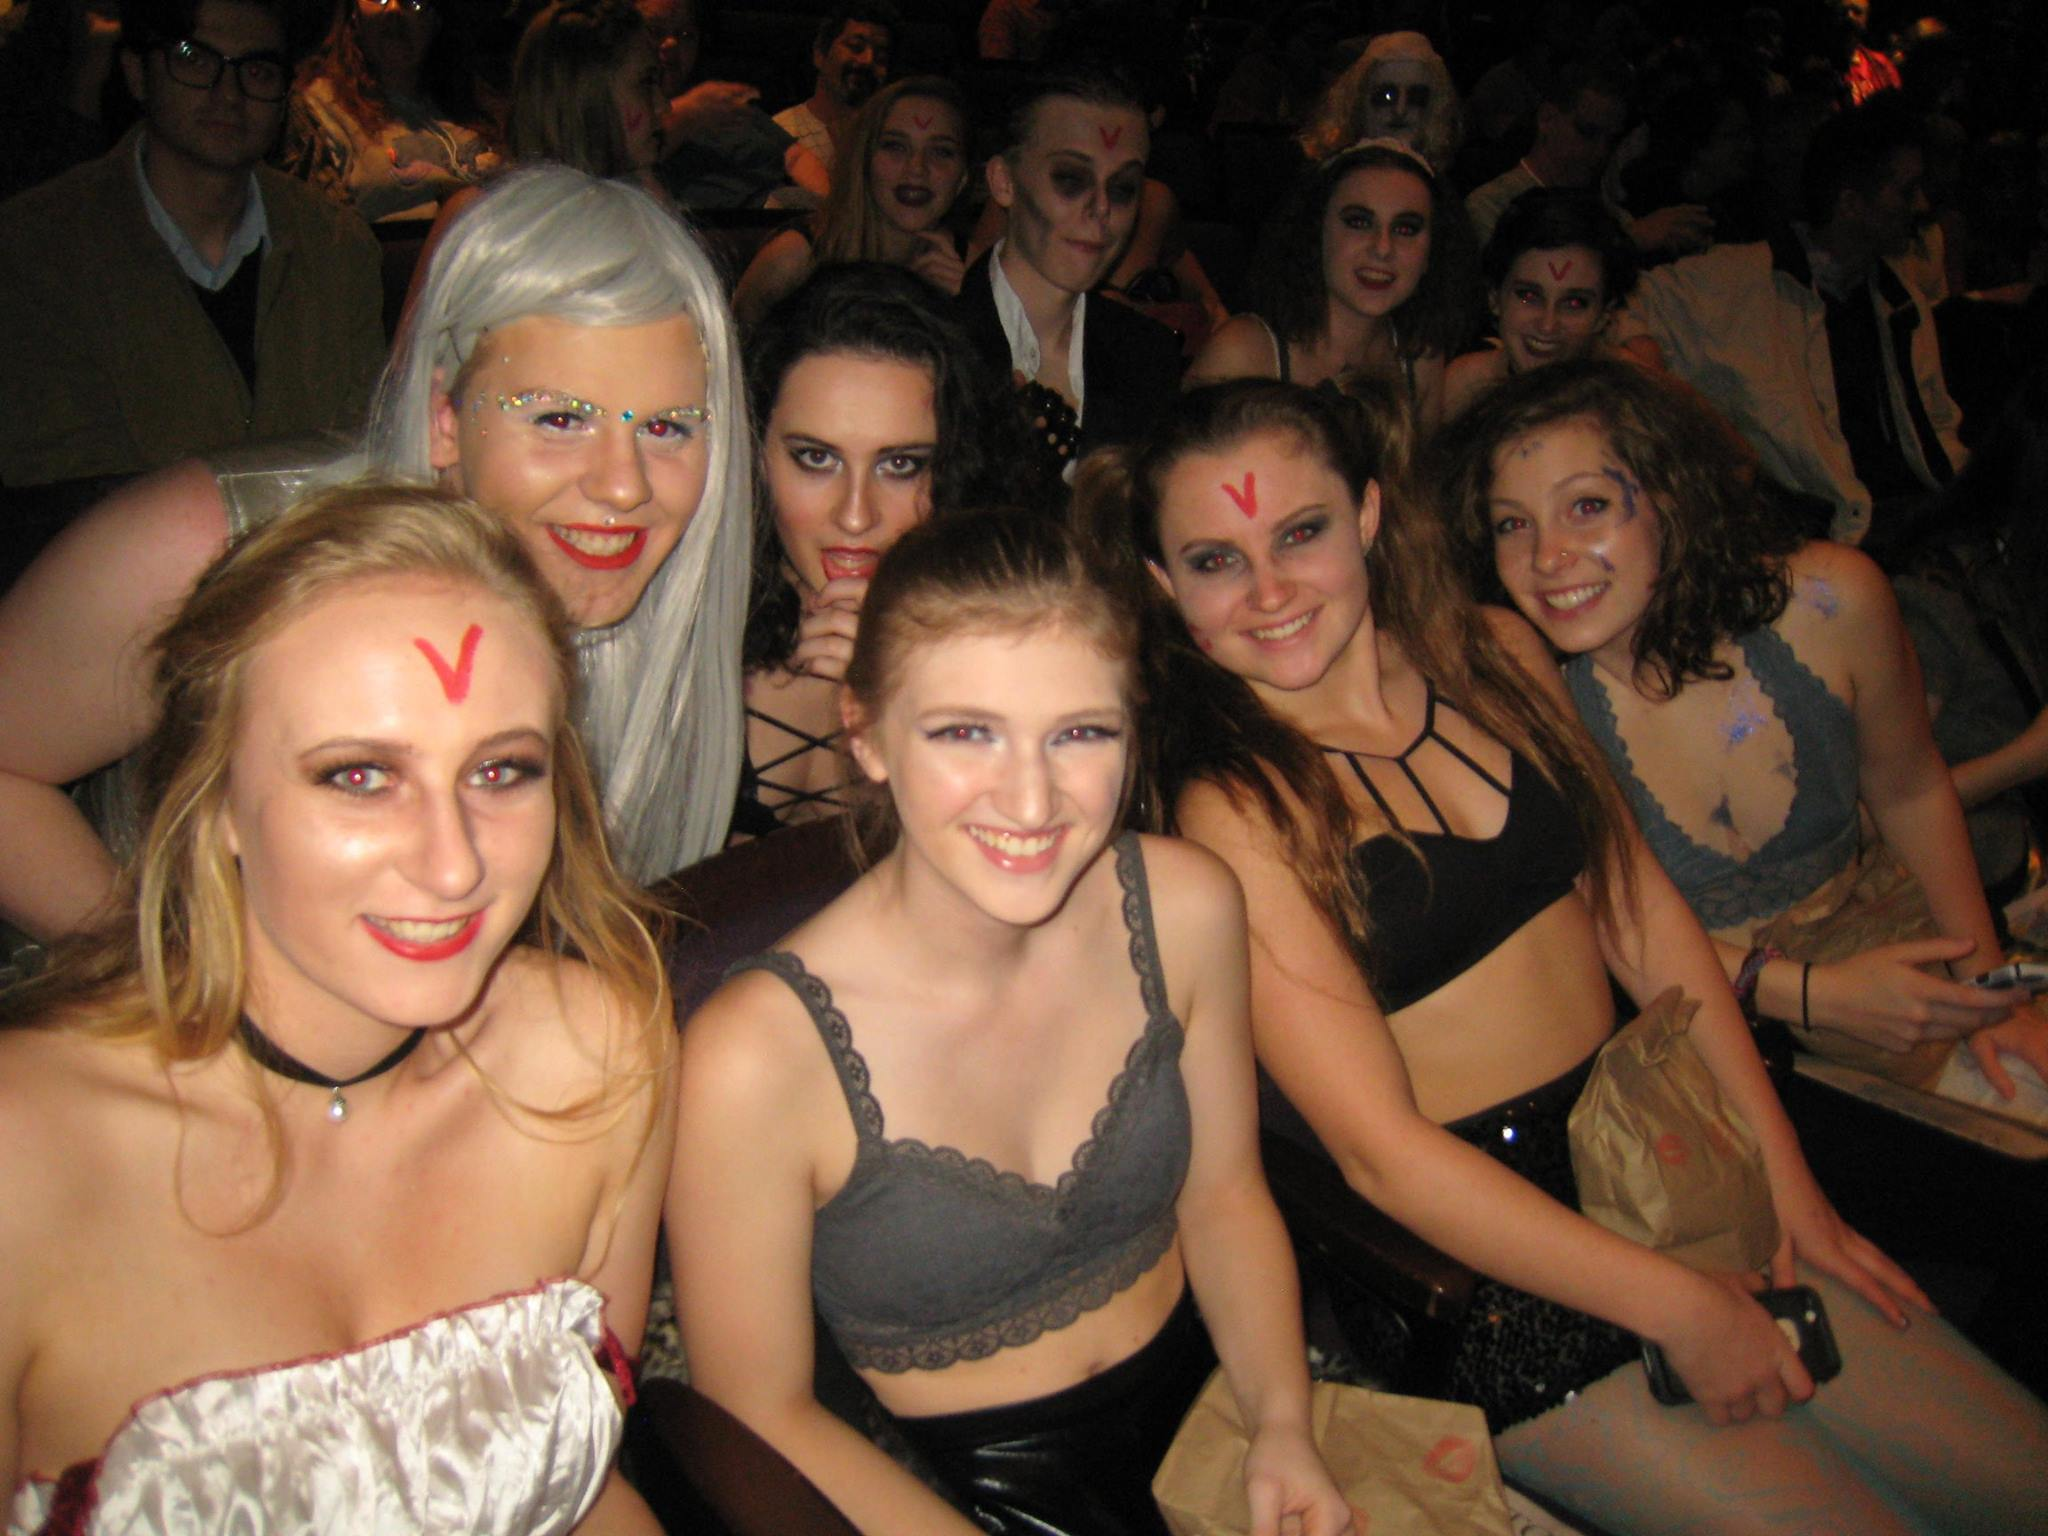 Rocky Horror Picture Show audience 5